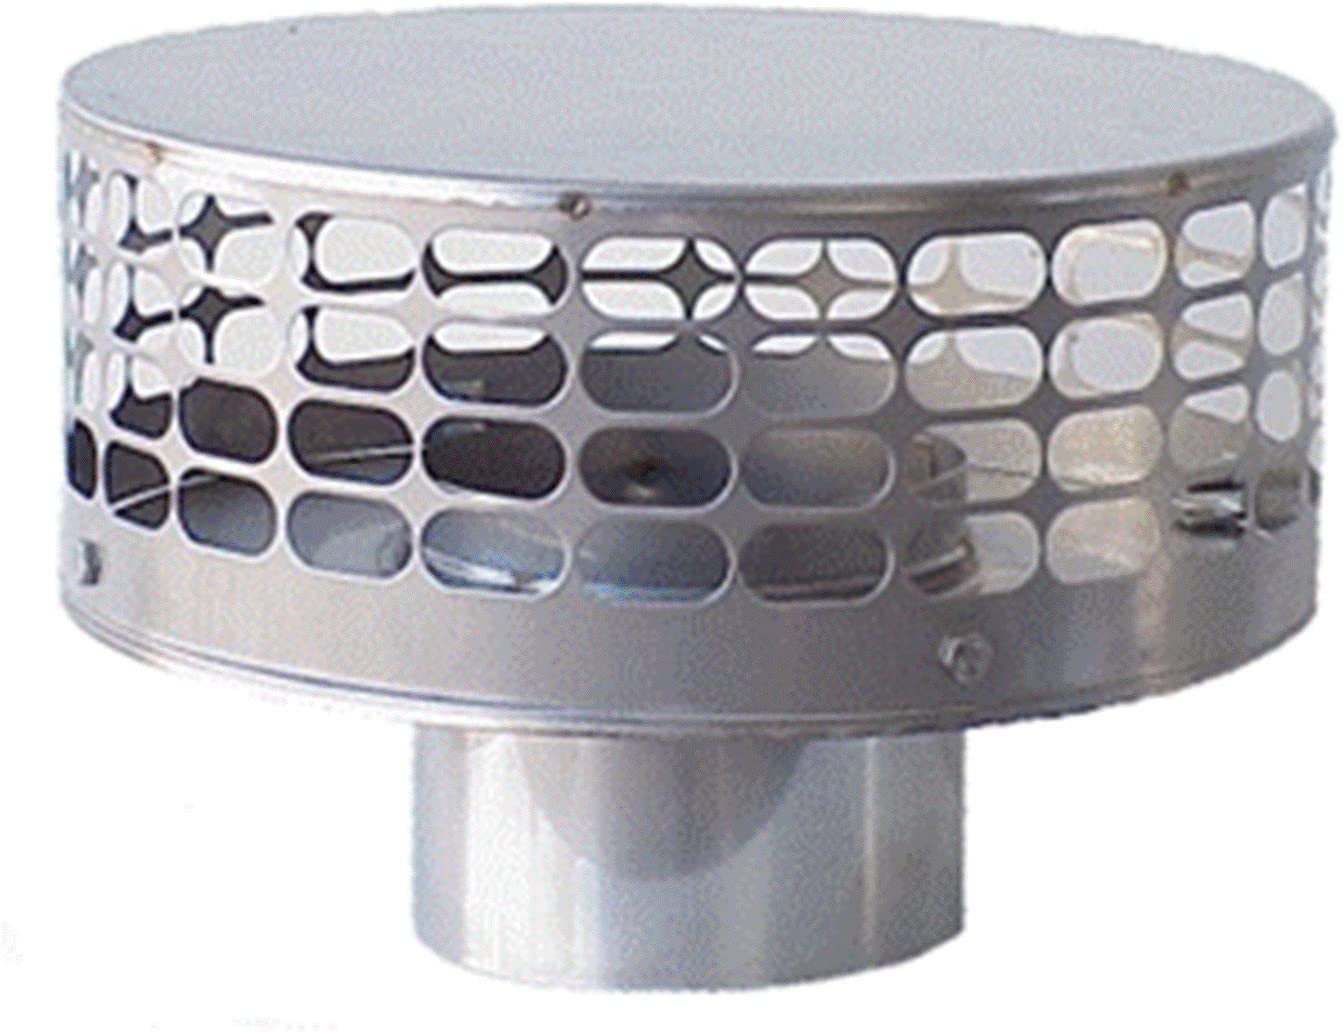 1-Pack The Forever Cap CCSC1335 13 x 35-Inch Multi Flue Stainless Steel Crown Mount Chimney Cap